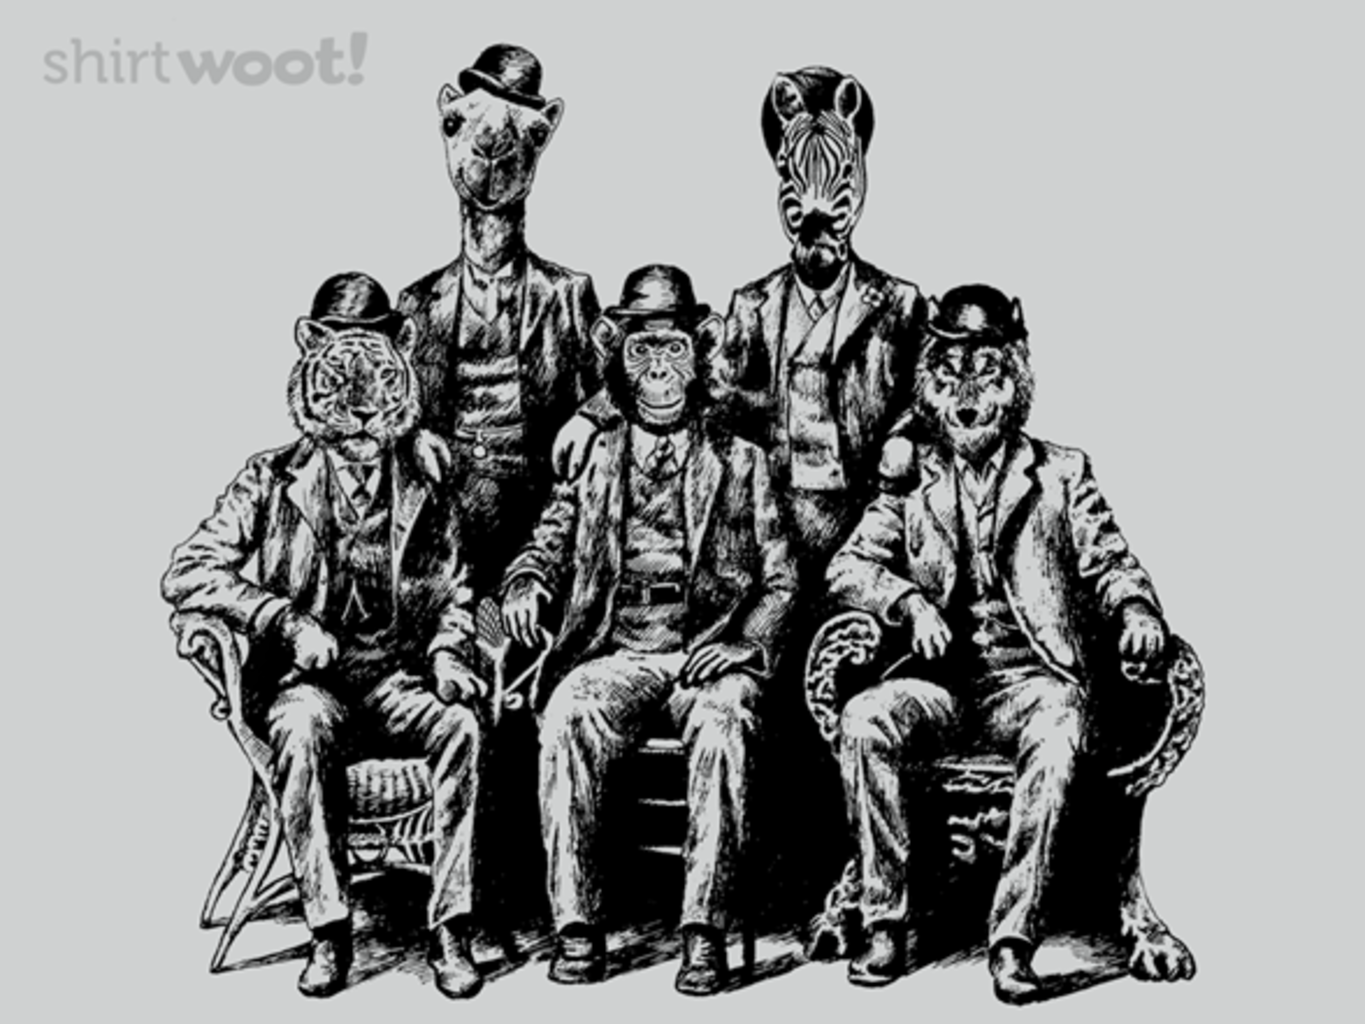 Woot!: The Wild Bunch